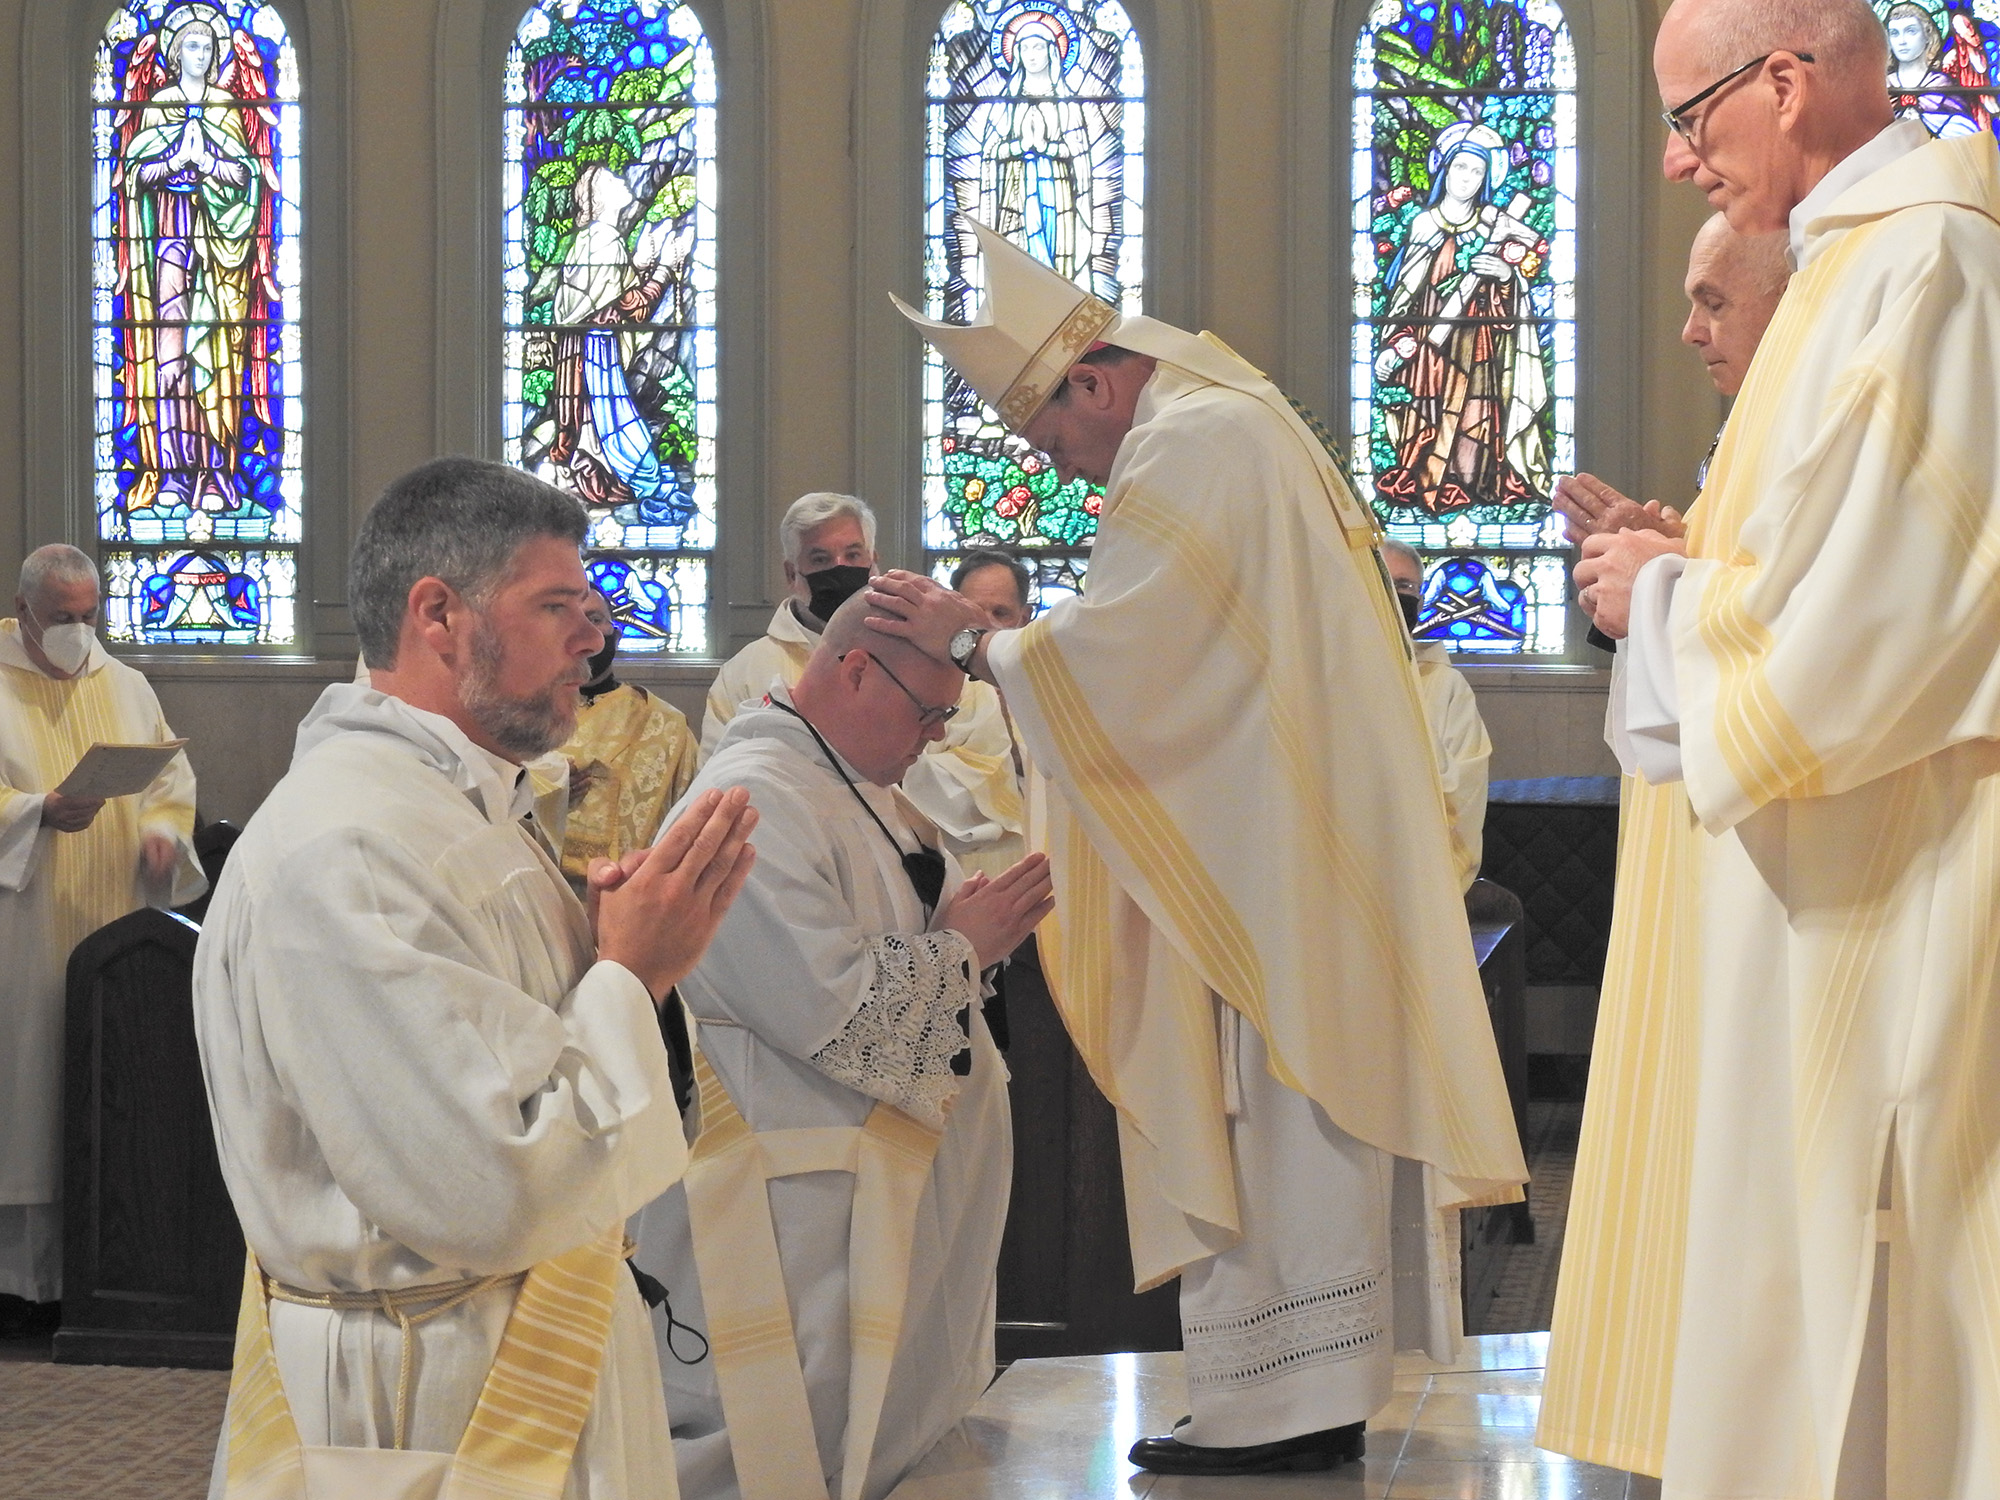 Robert Johnson and Thomas Kennedy were ordained to the holy priesthood on May 22, 2021 at St. Francis Xavier Cathedral in Alexandria.